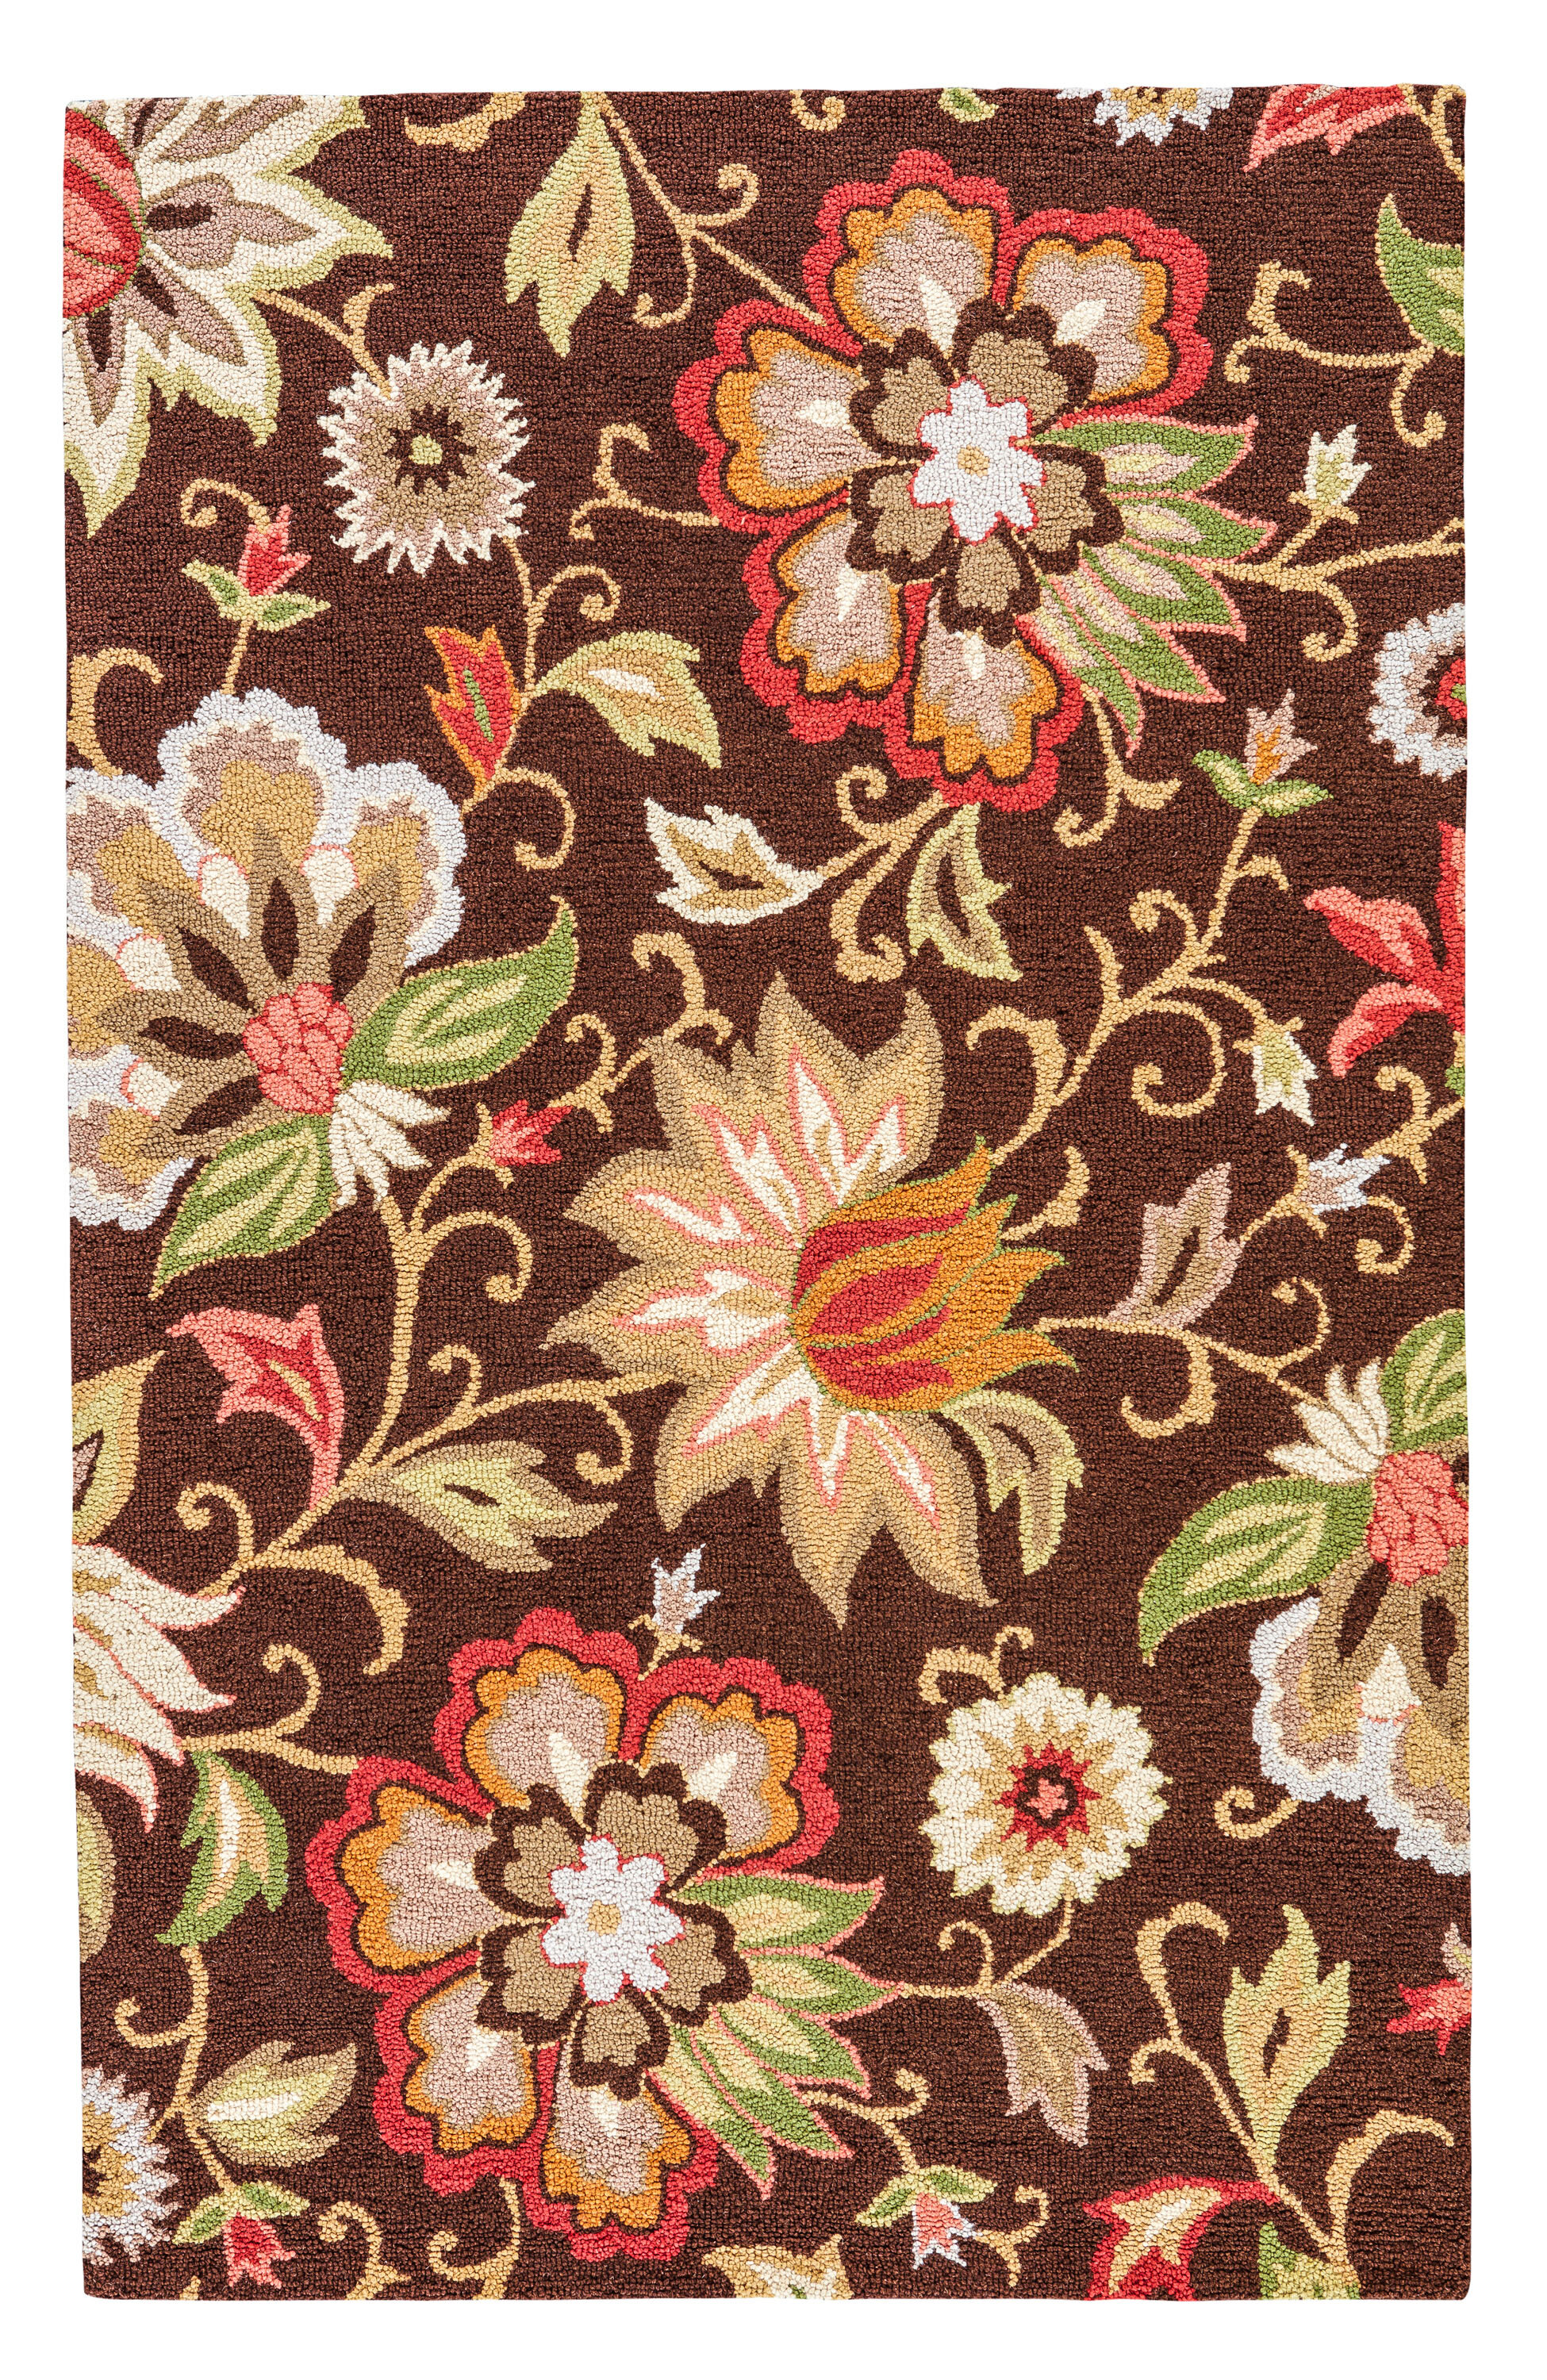 Darby Home Co Dilbeck Floral Handmade Hand Tufted Wool Dark Chocolate Cream Red Green Beige Area Rug Reviews Wayfair